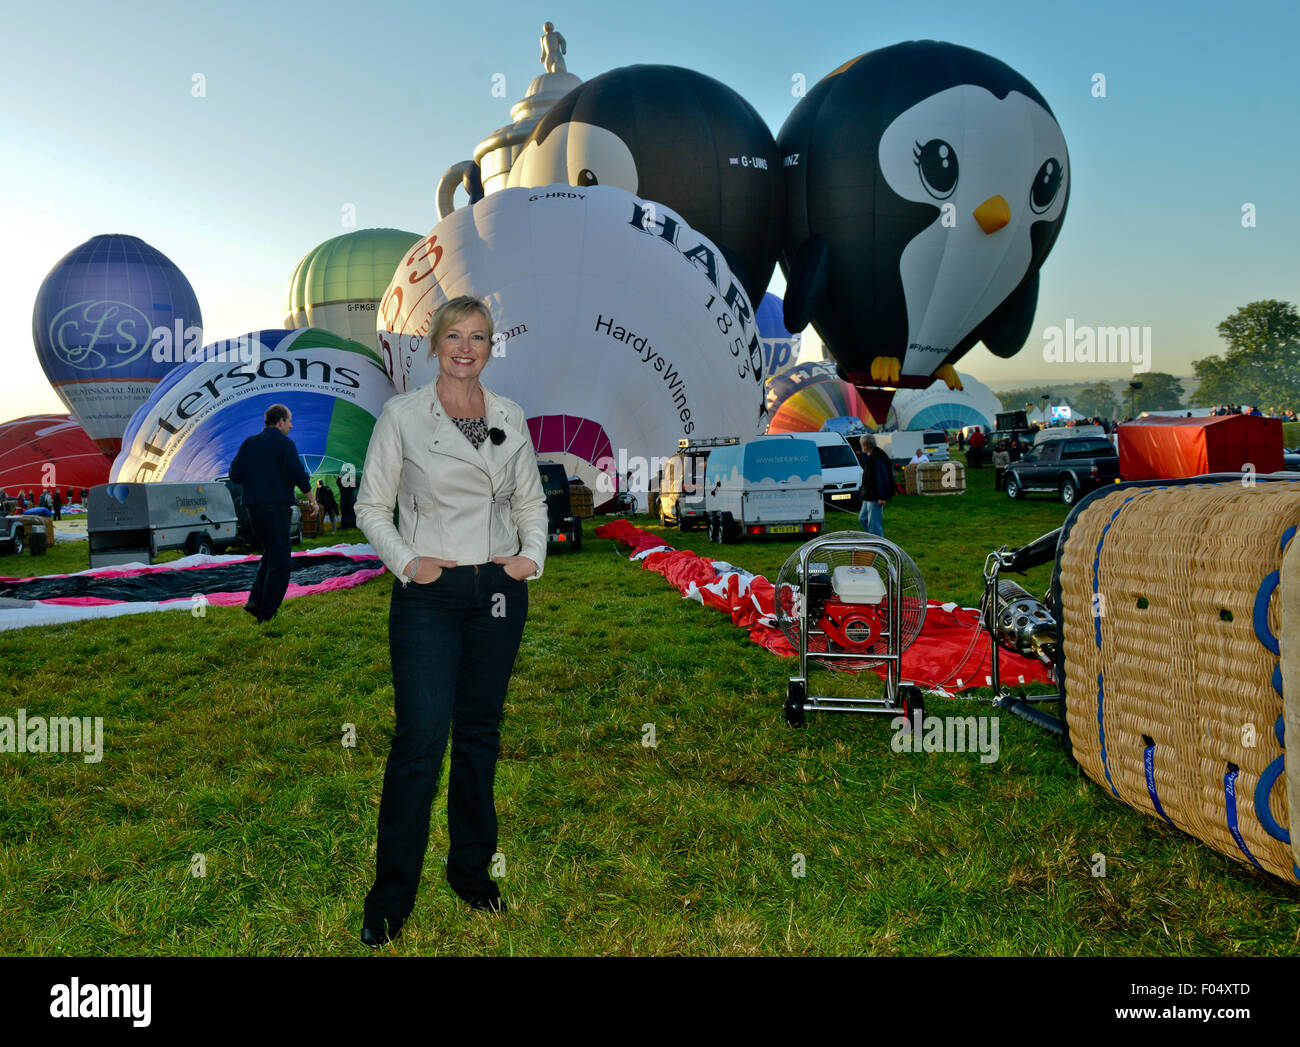 Bristol, UK. 7th Aug, 2015. BBC 1 weather presenter Carol Kirkwood  watches as Over 100 hot air balloons take to - Stock Image